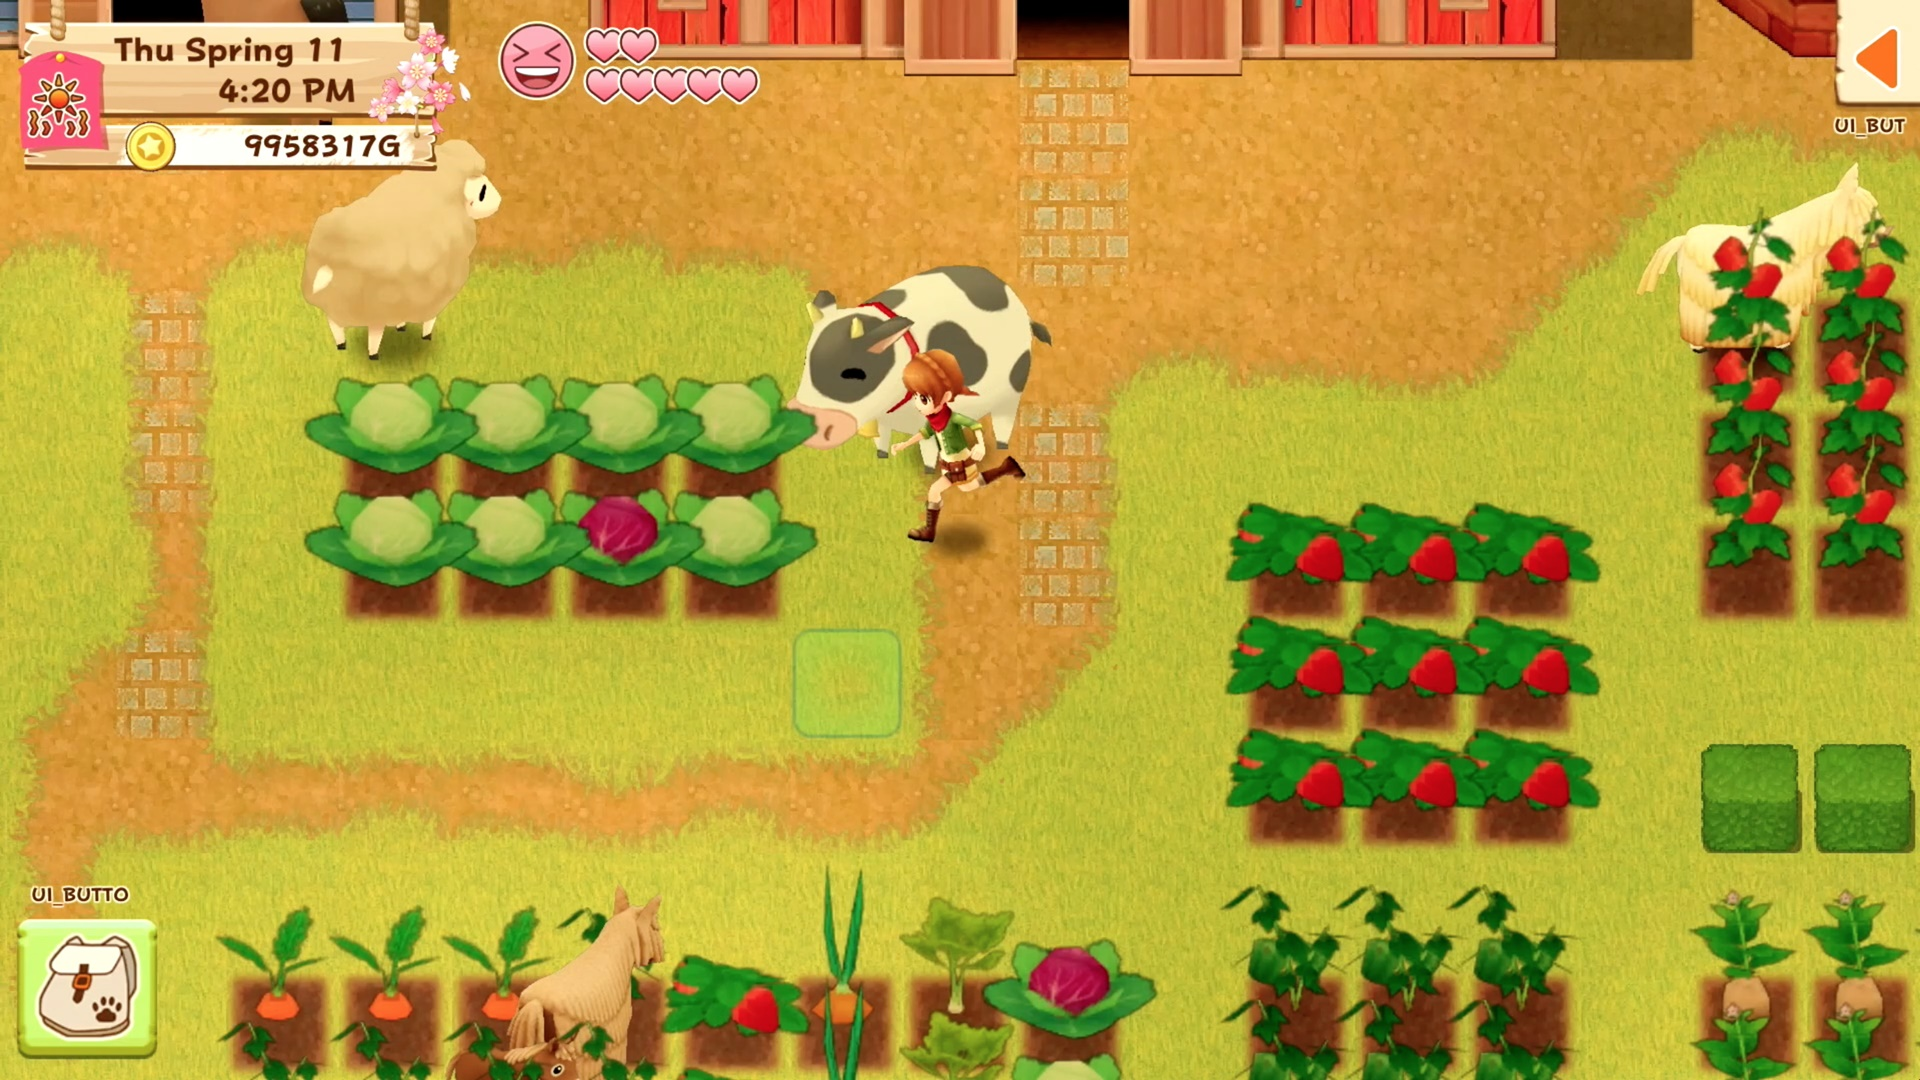 Best Farming Games And Agricultural Games On Pc Pcgamesn